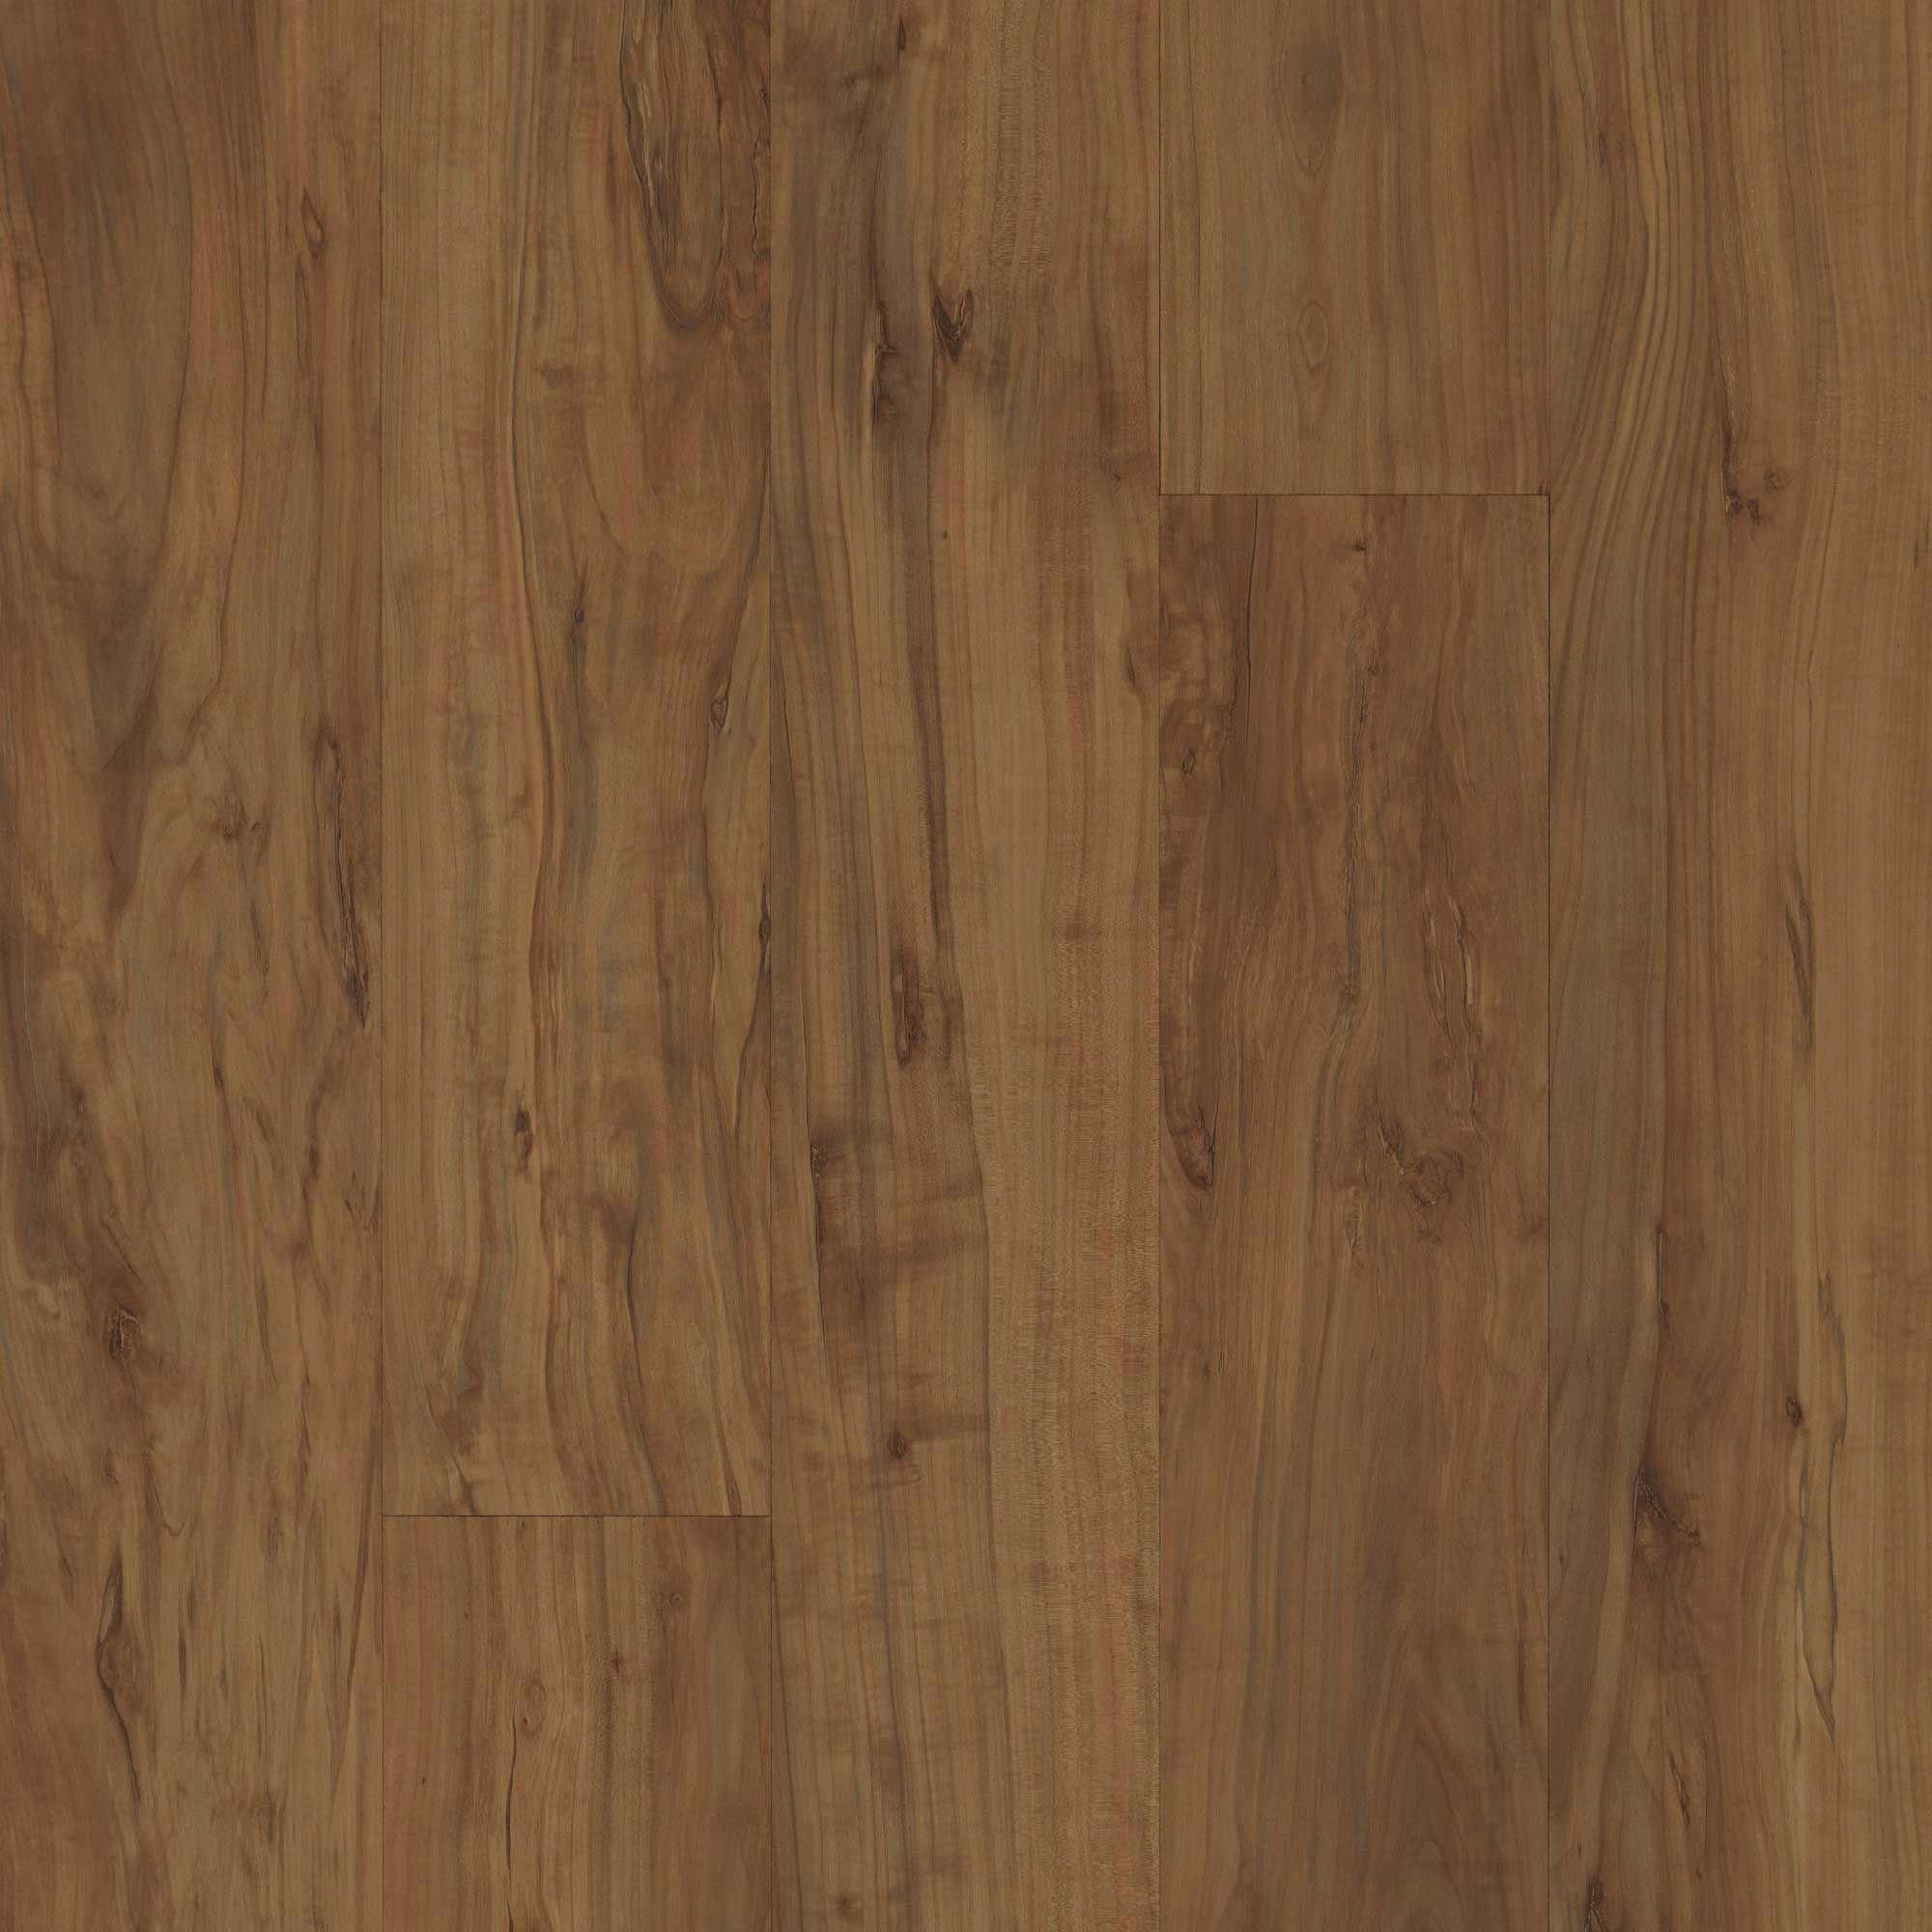 Apple Wood Smooth Laminate Floor Caramel Color Apple Wood Finish 10mm 1 Strip Plank Laminate Flooring Laminate Flooring Pergo Outlast Wood Floors Wide Plank